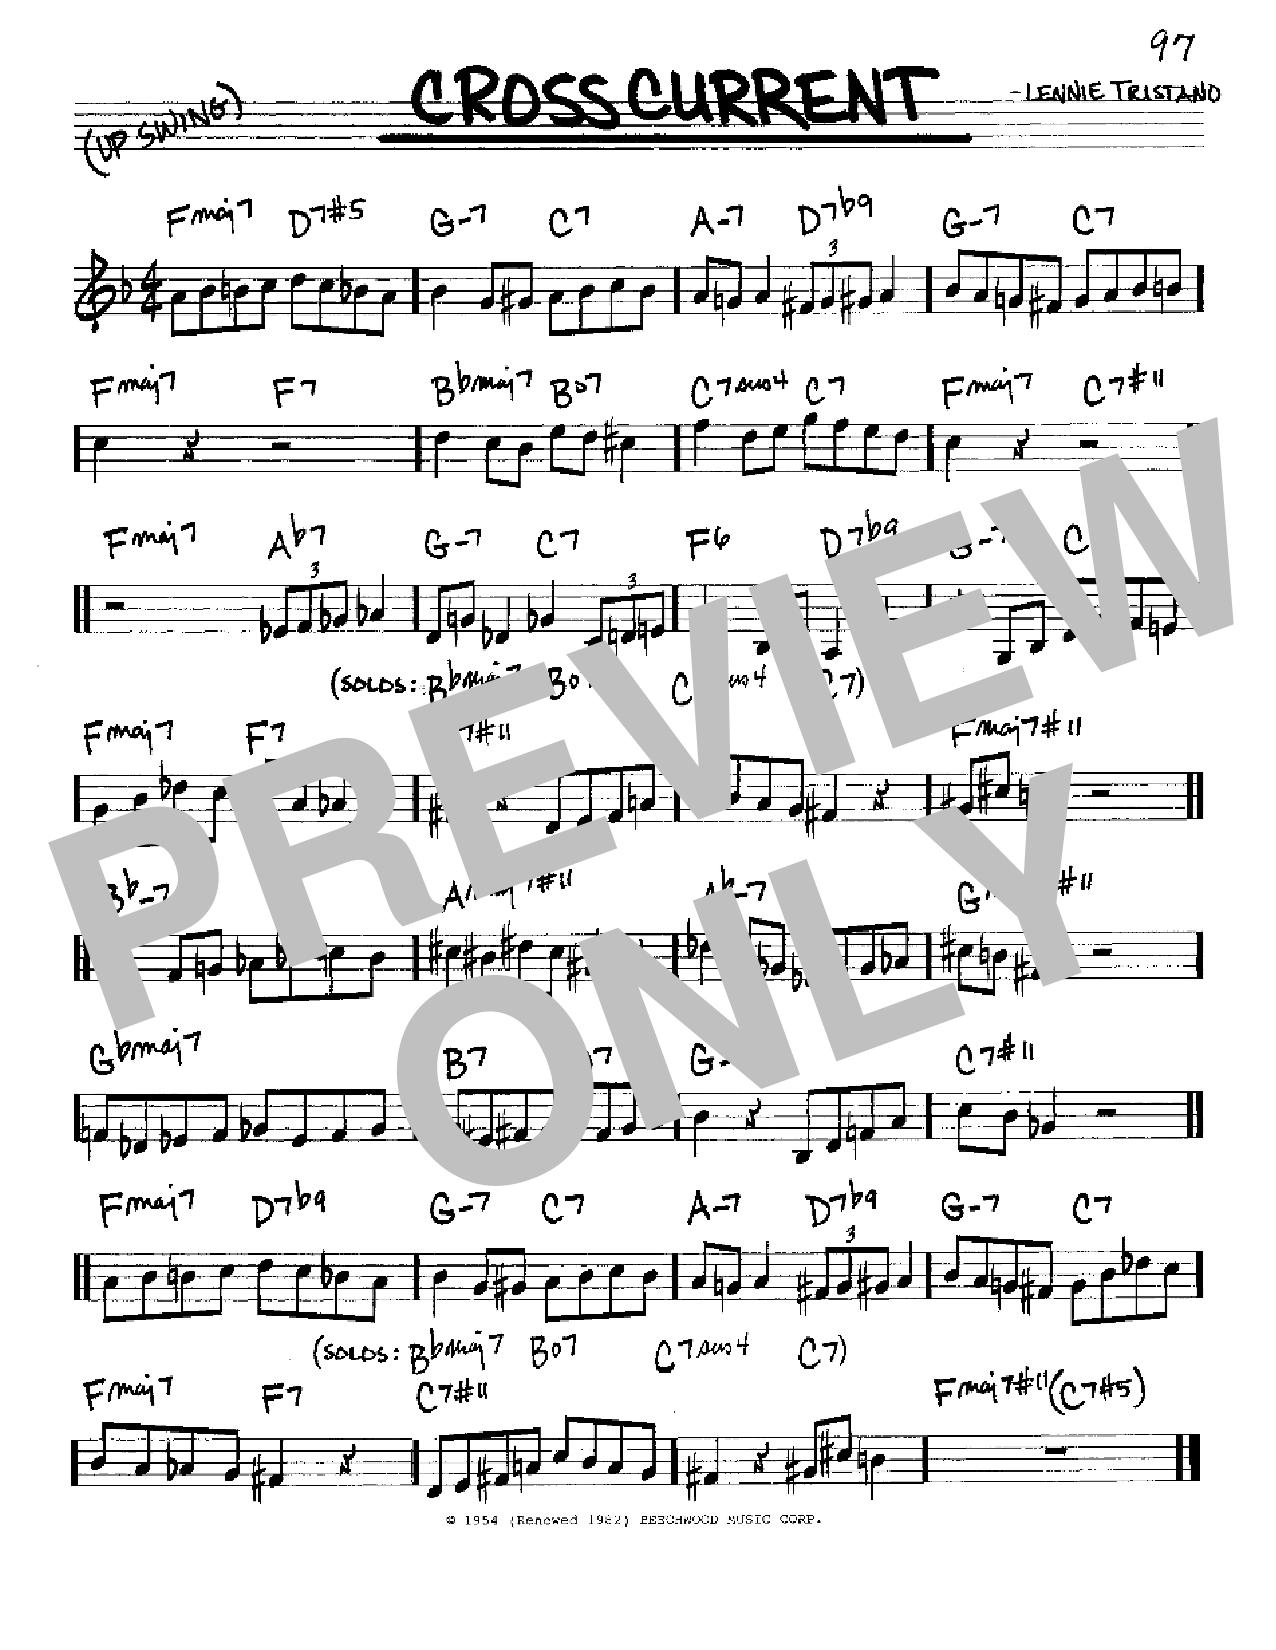 Crosscurrent Sheet Music